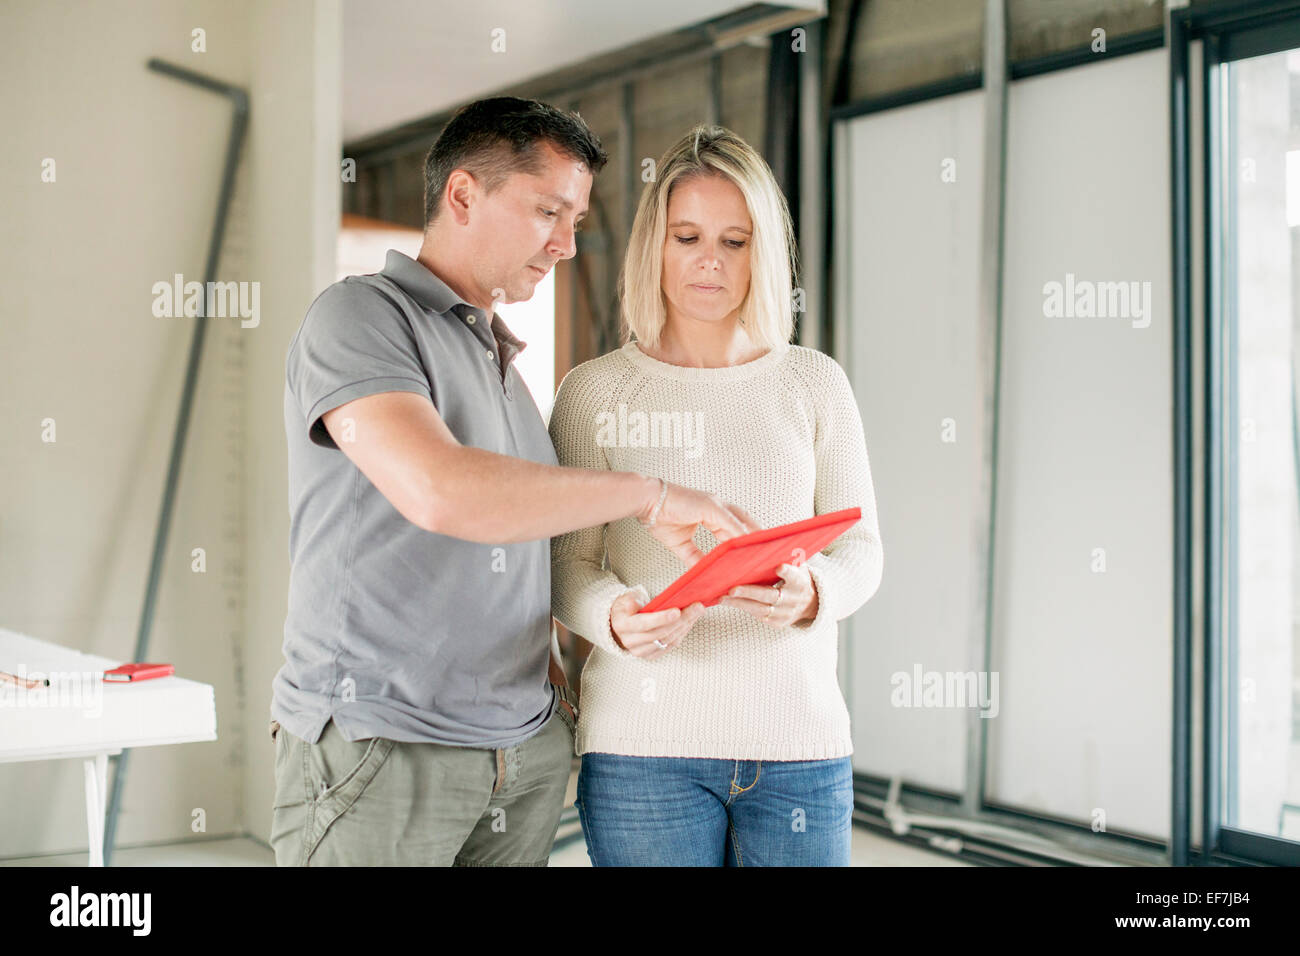 Couple using digital tablet at home - Stock Image